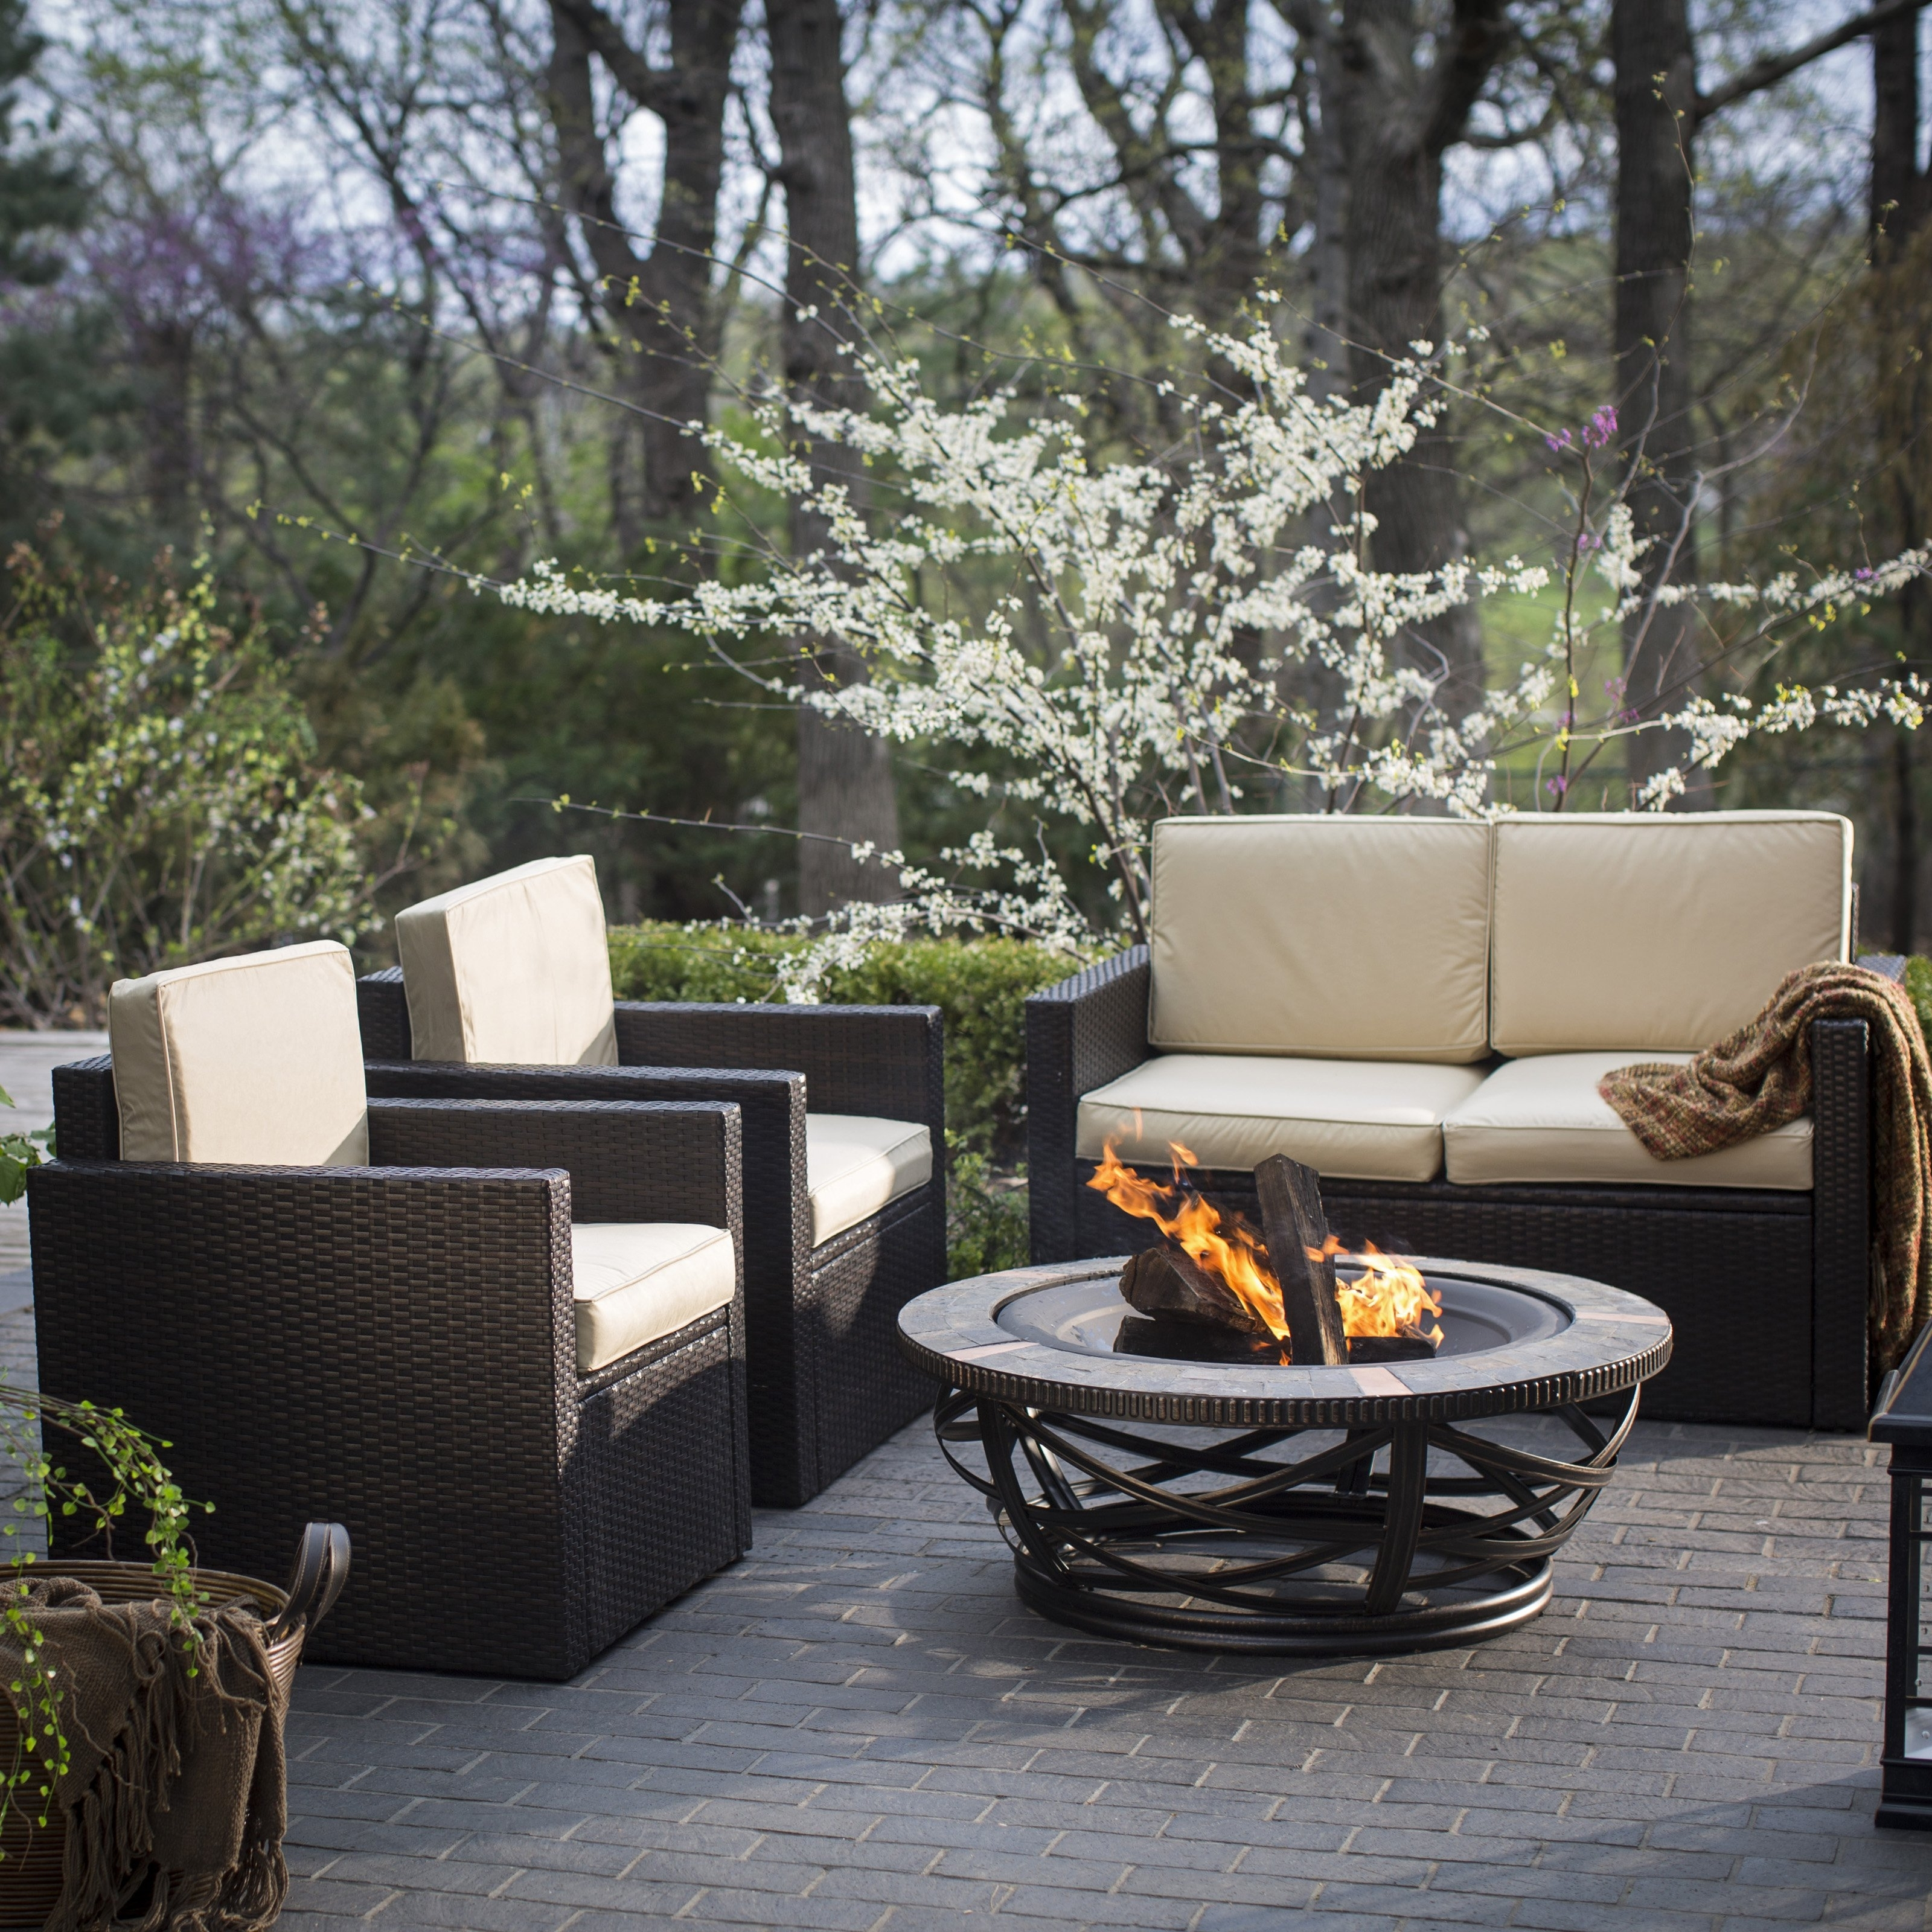 Widely Used Costway 4 Pc Patio Rattan Wicker Chair Sofa Table Set Outdoor Garden Inside Walmart Patio Furniture Conversation Sets (View 13 of 20)